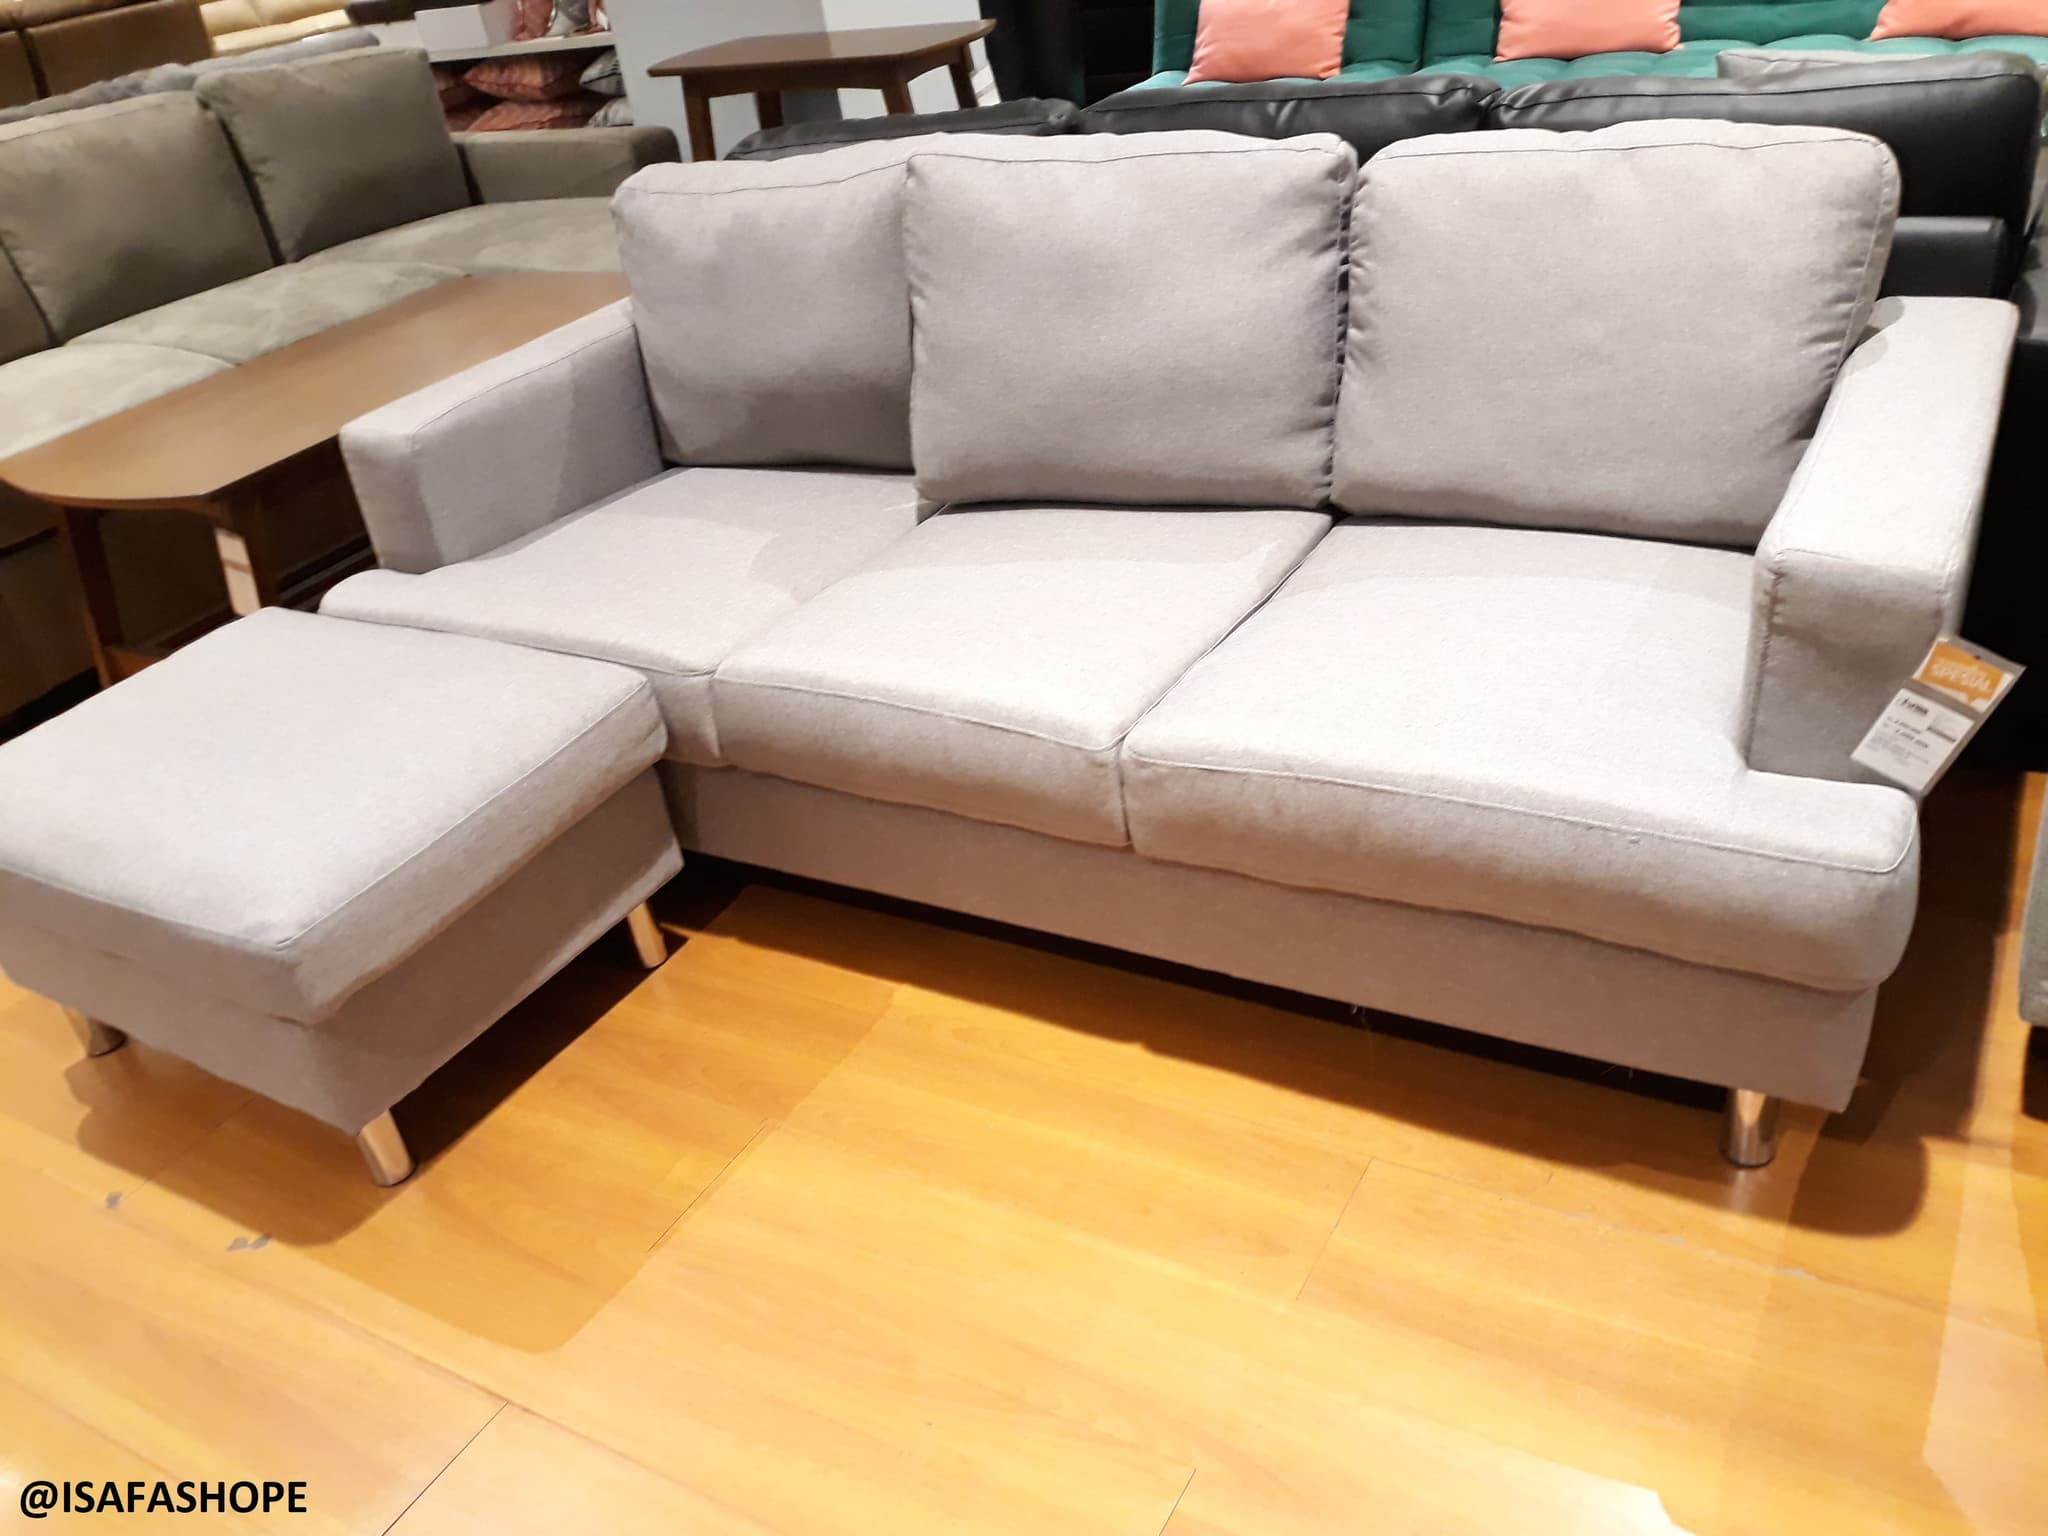 Kualitas Sofa Informa Furniture Interior Sofa Bed Orleans By Informa